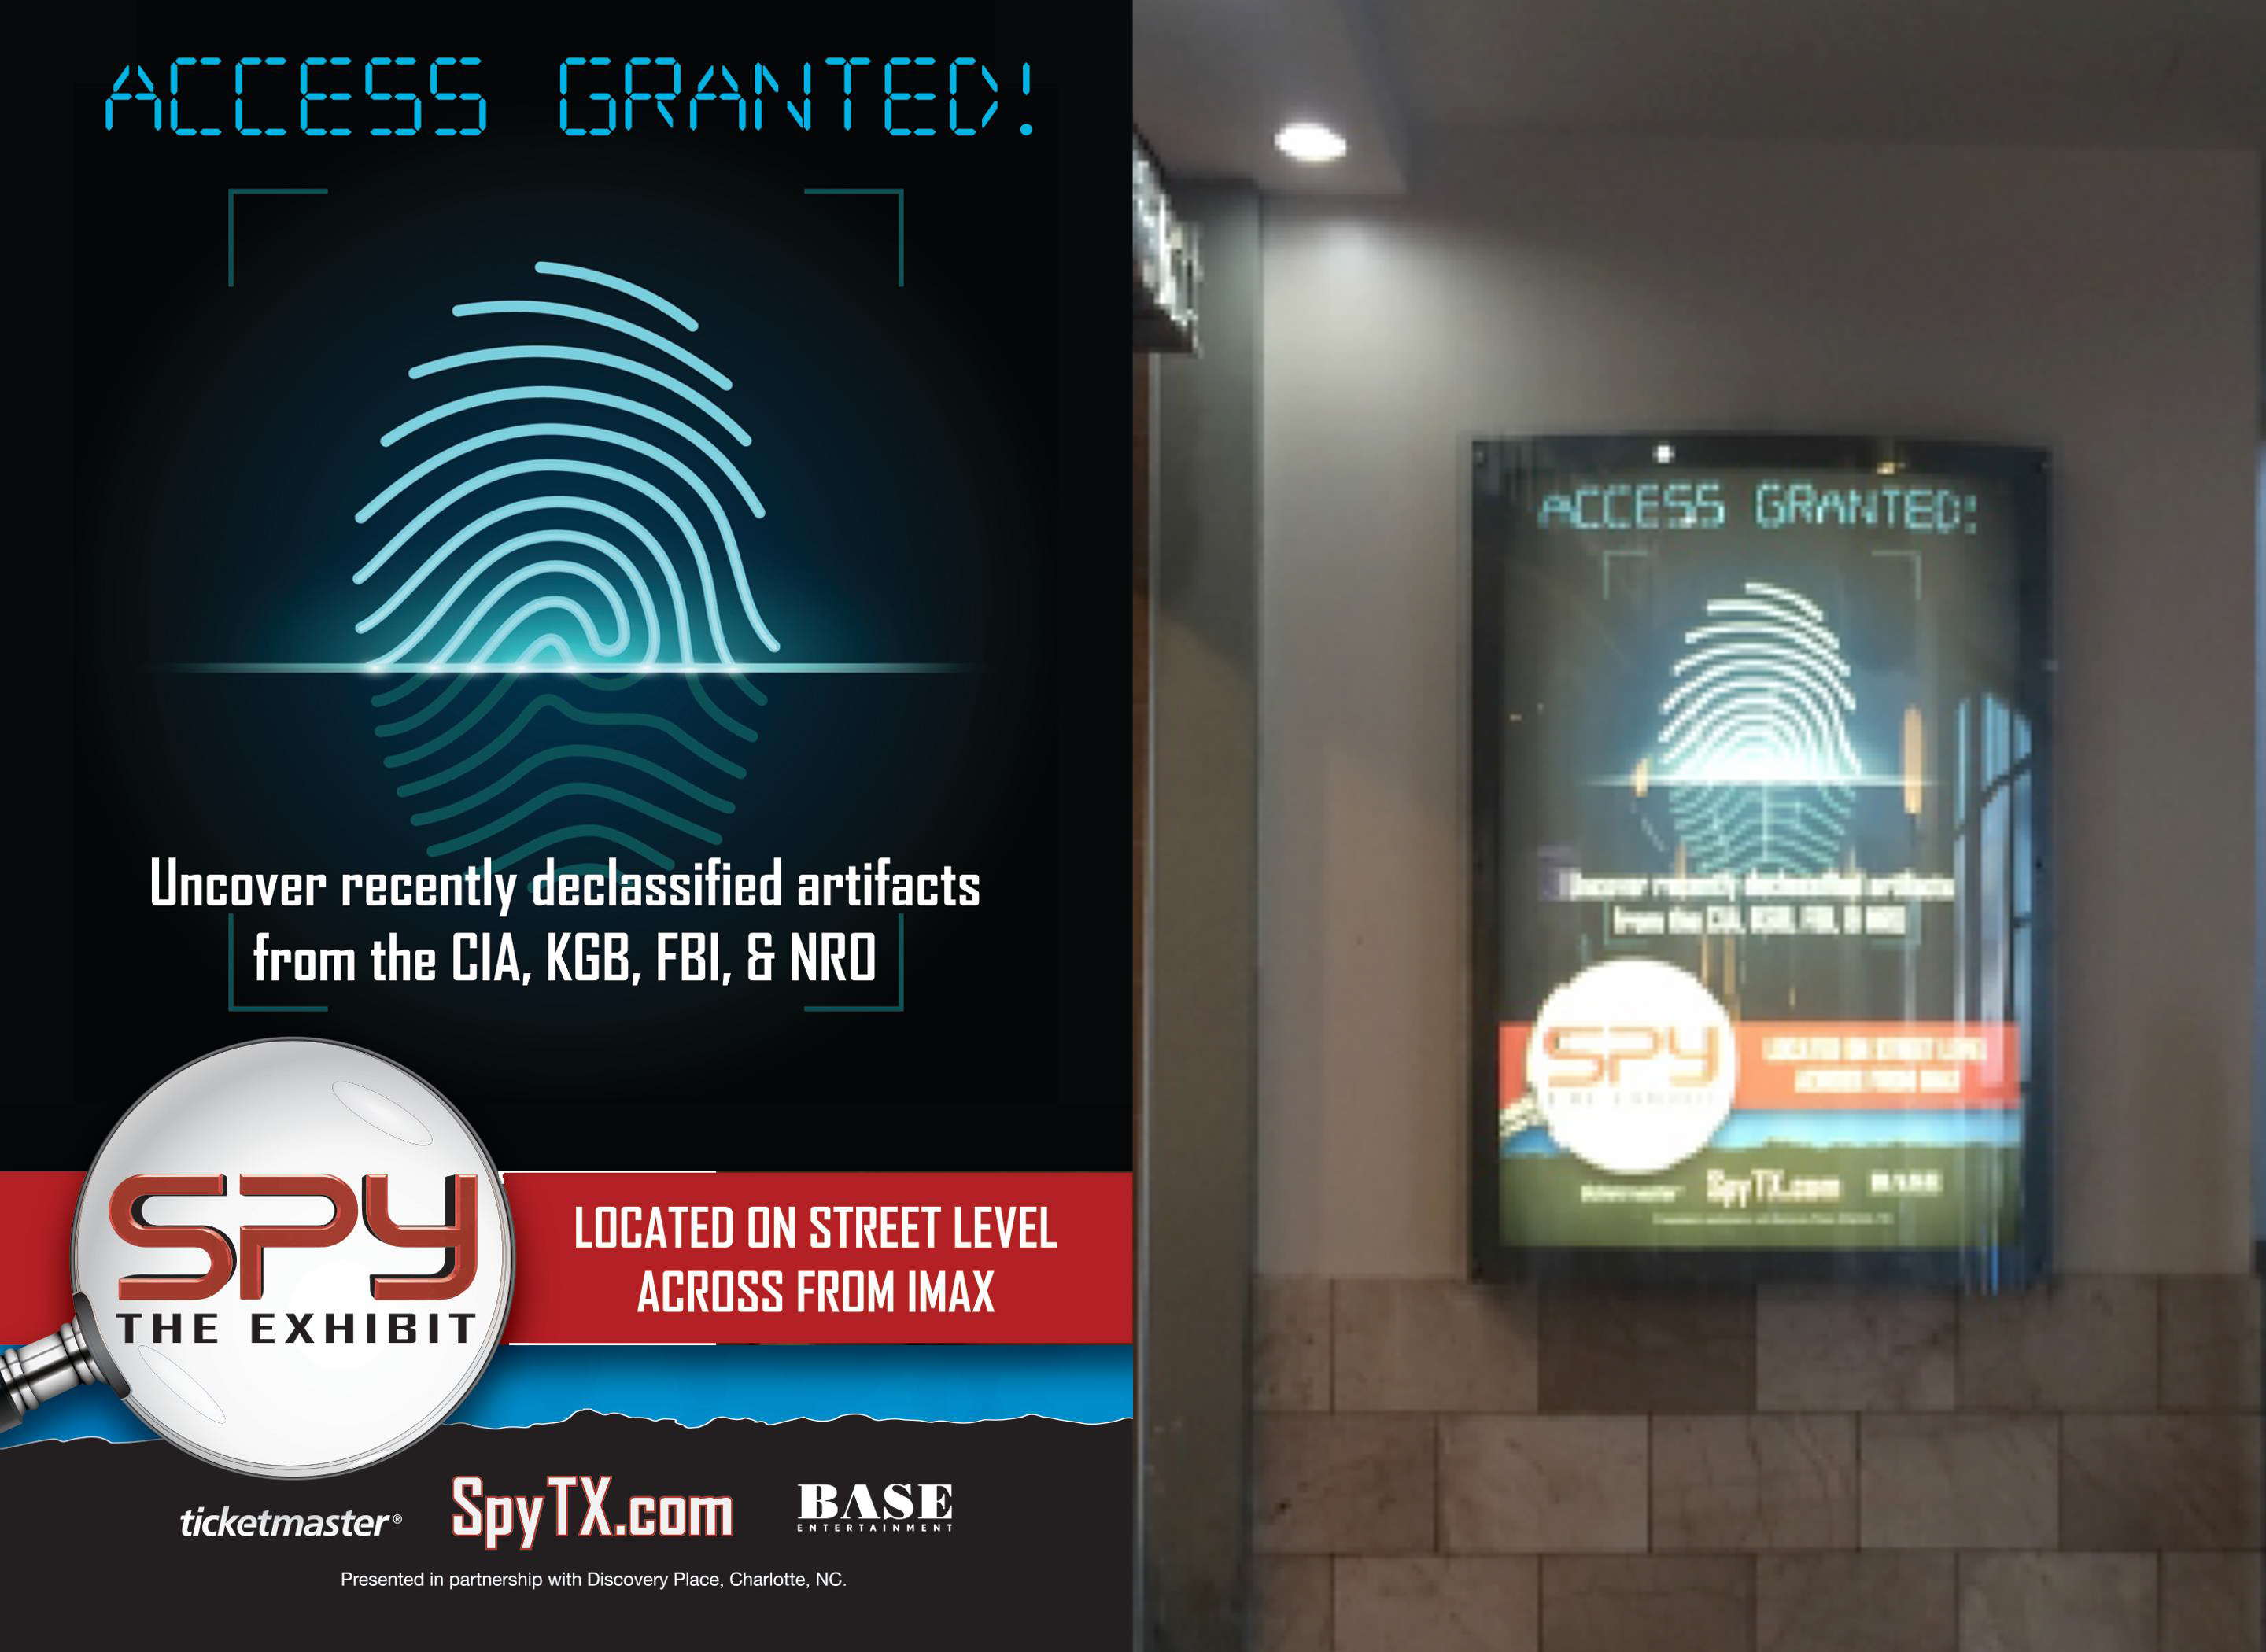 SPY: The Exhibit Backlit Display